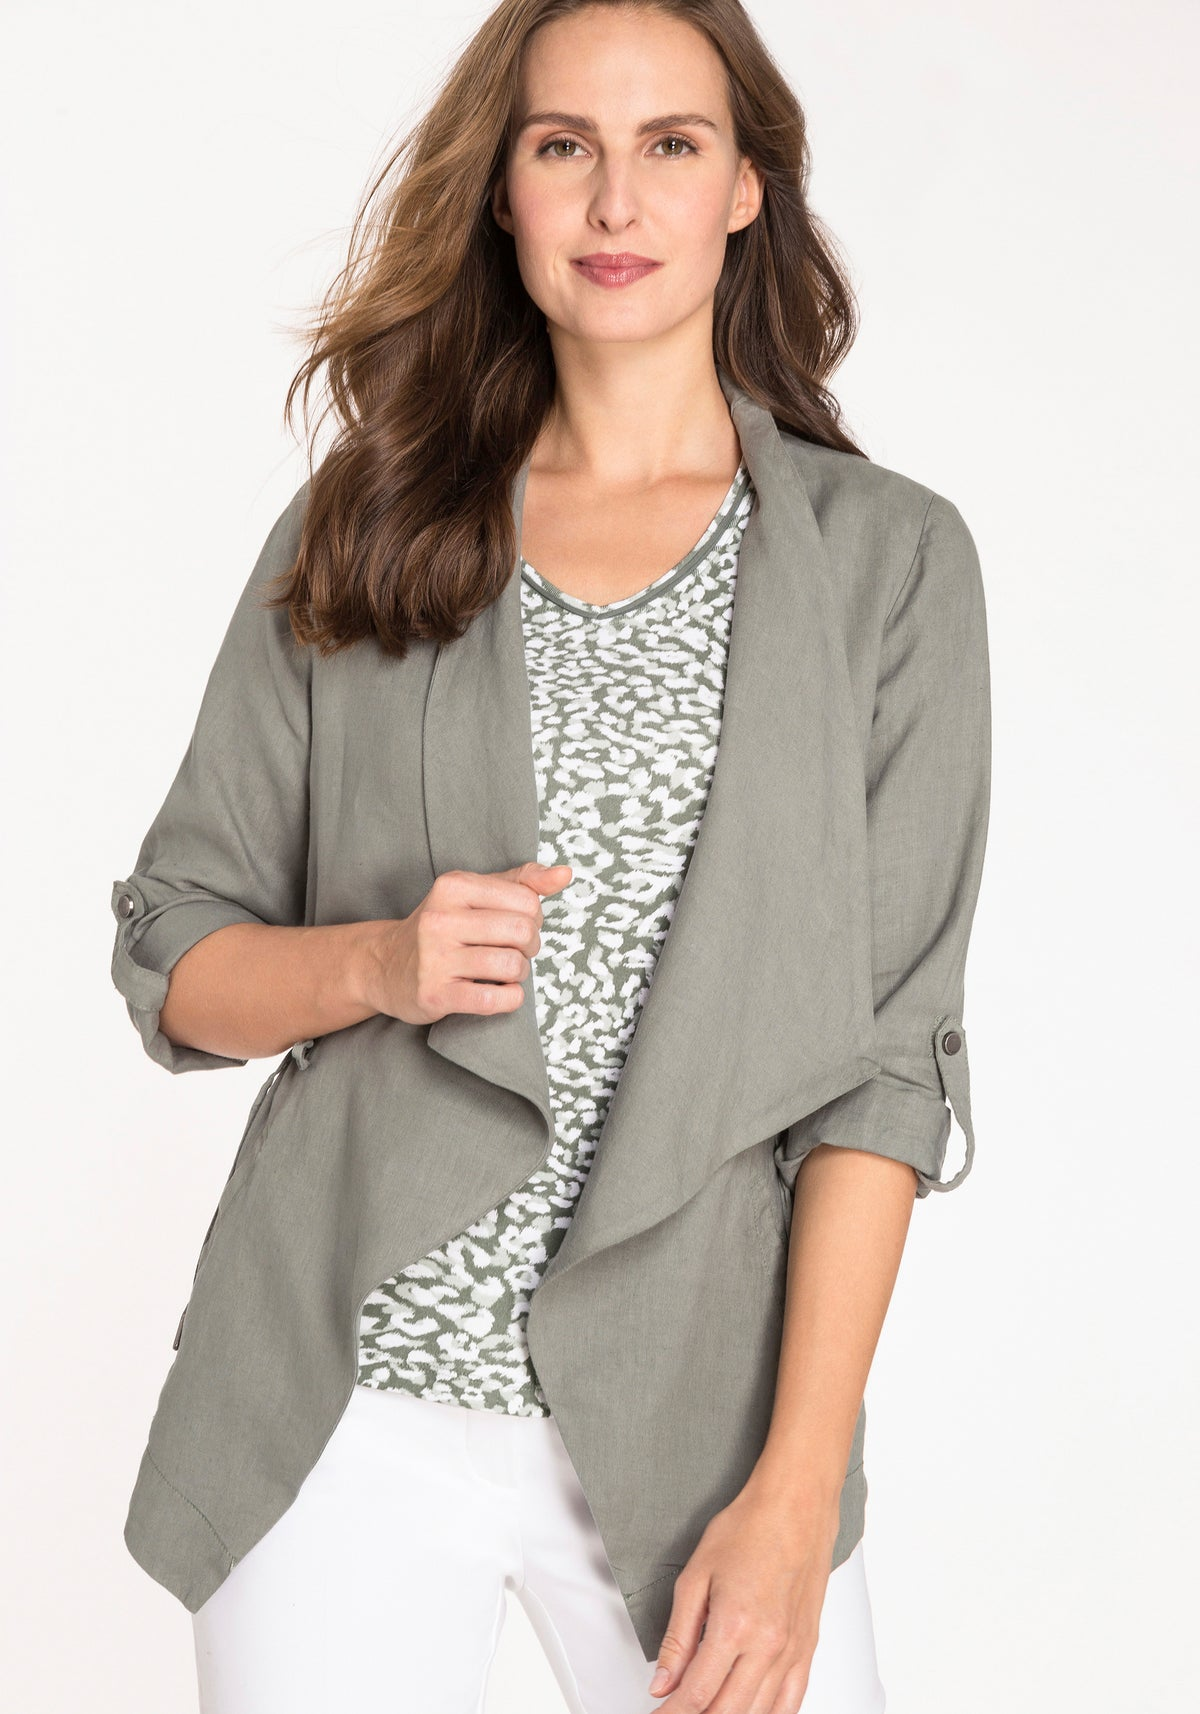 100% Linen Drape Collar Long Sleeve Jacket with Drawstring Waist & Roll Tab Sleeve Detail